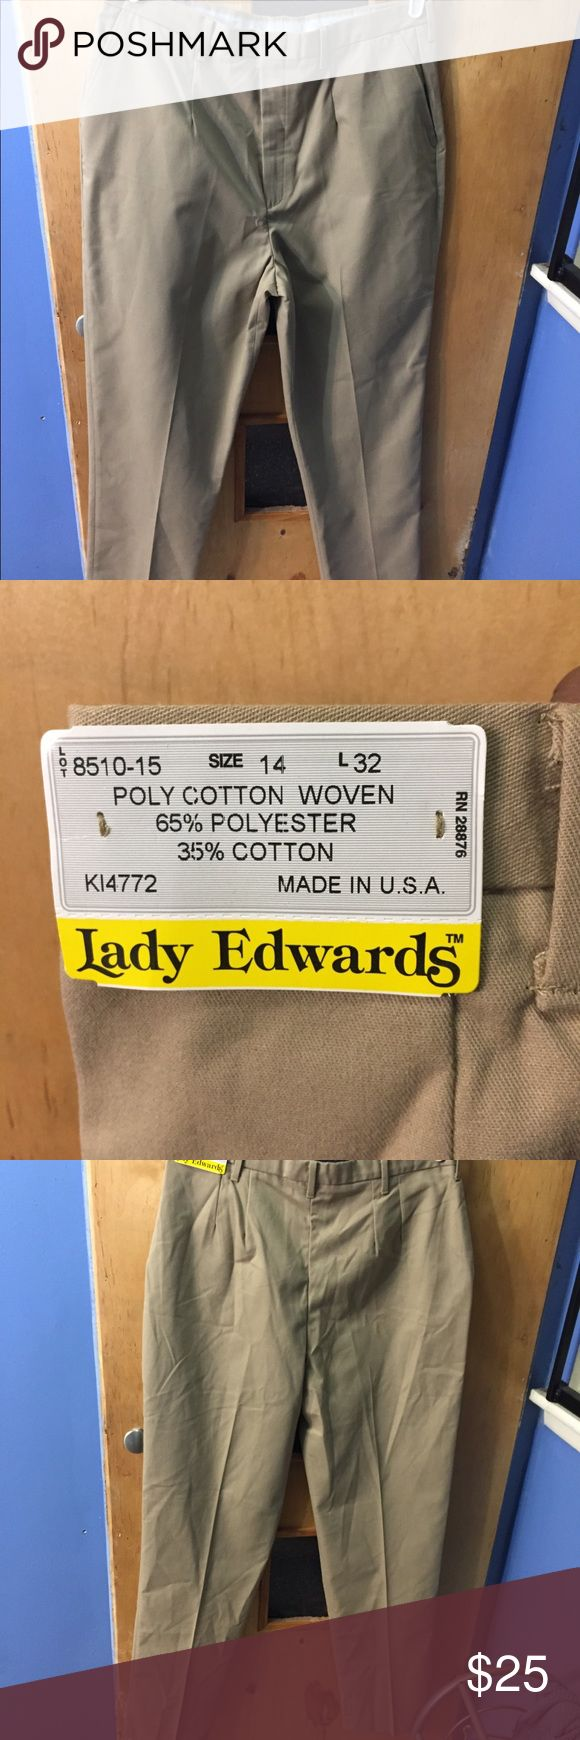 "Lady Edwards Uniform work Tan pants size 14 65% Polyester/35% Cotton; 7.5/8.0 oz.wt. Casual chino blend pant Flat front, button closure and brass zipper Two front and one back pocket Tall sizes available Moisture wicking fabric Soil and wrinkle resistant Industrial launder or machine washable  -size 14 -measurements 17"" laying flat -32"" long Lady Edwards Pants Trousers"